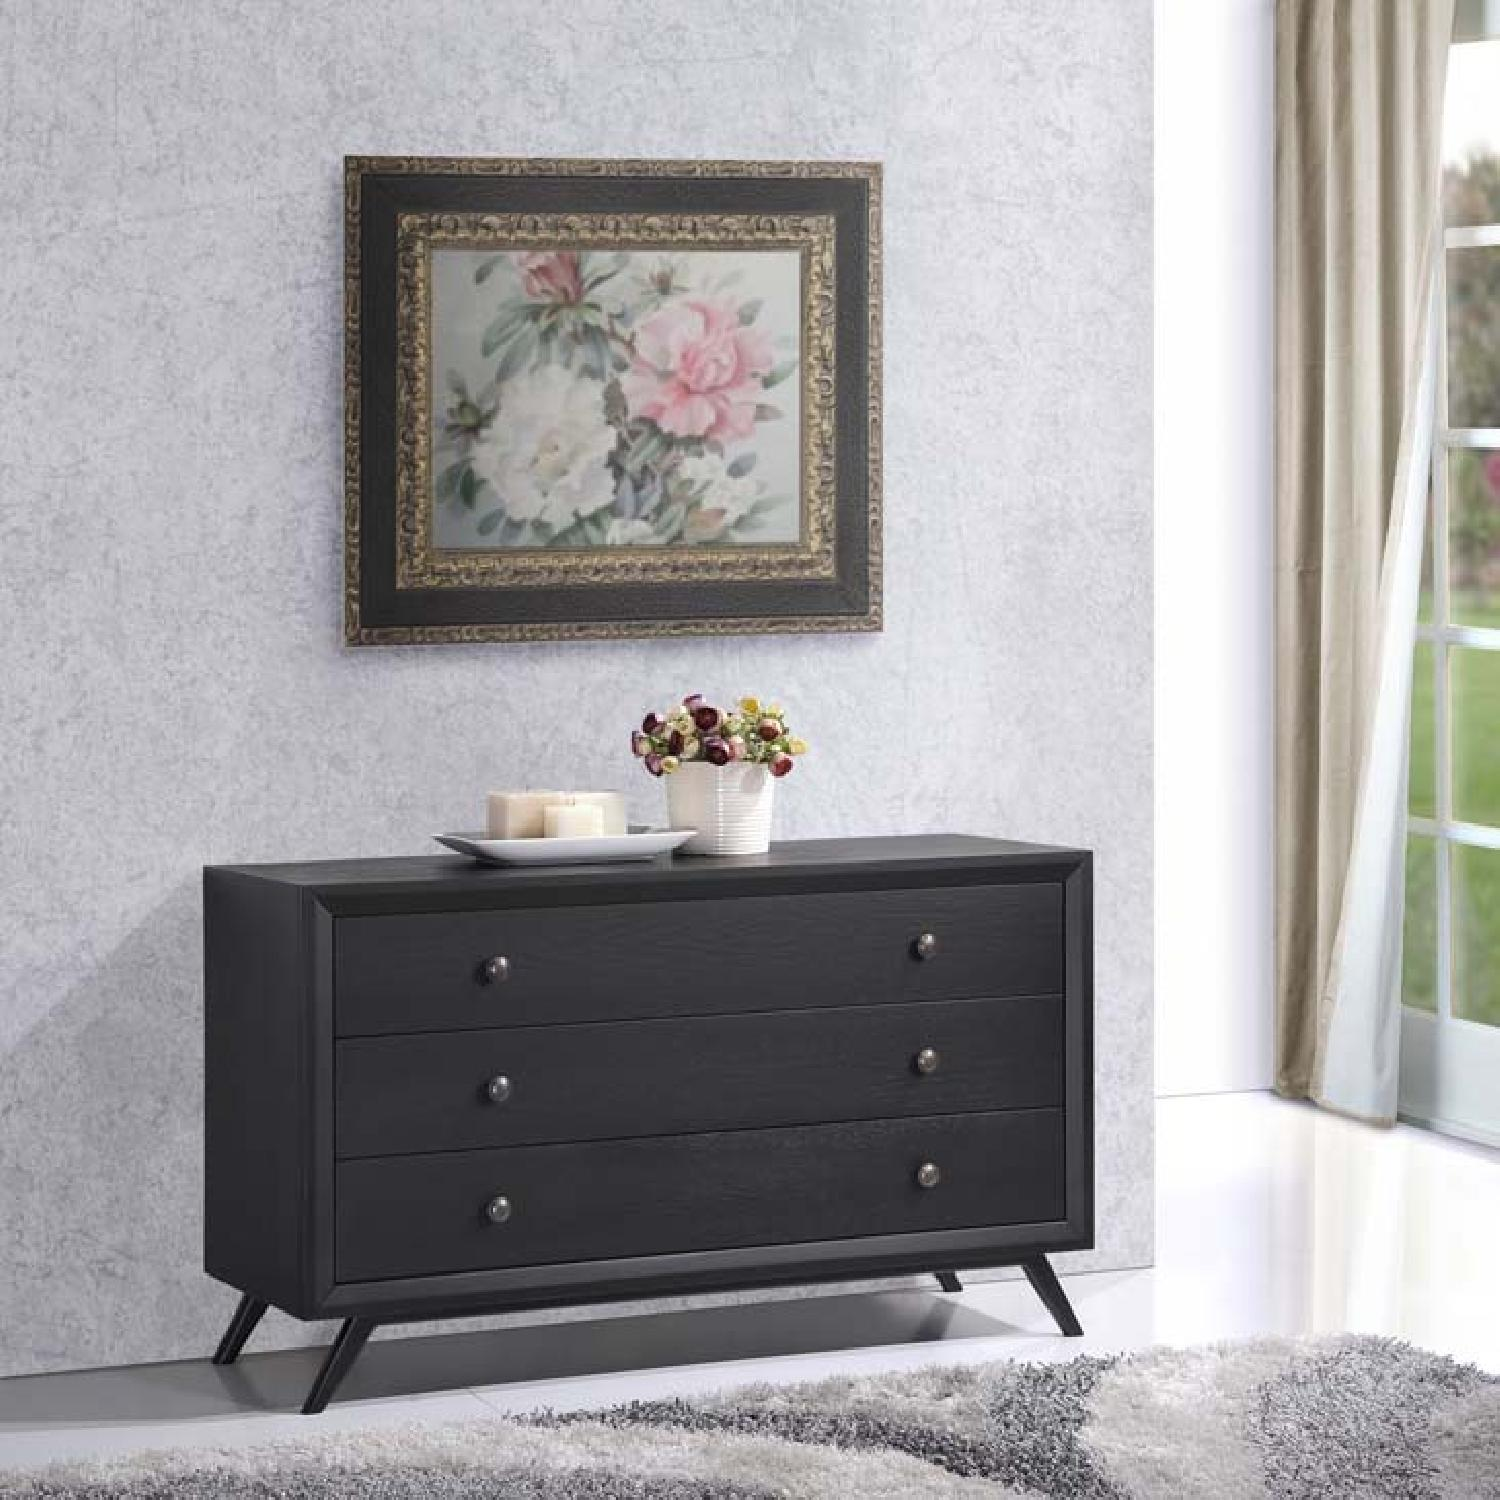 Manhattan Home Design Modern Wood Dresser in Black